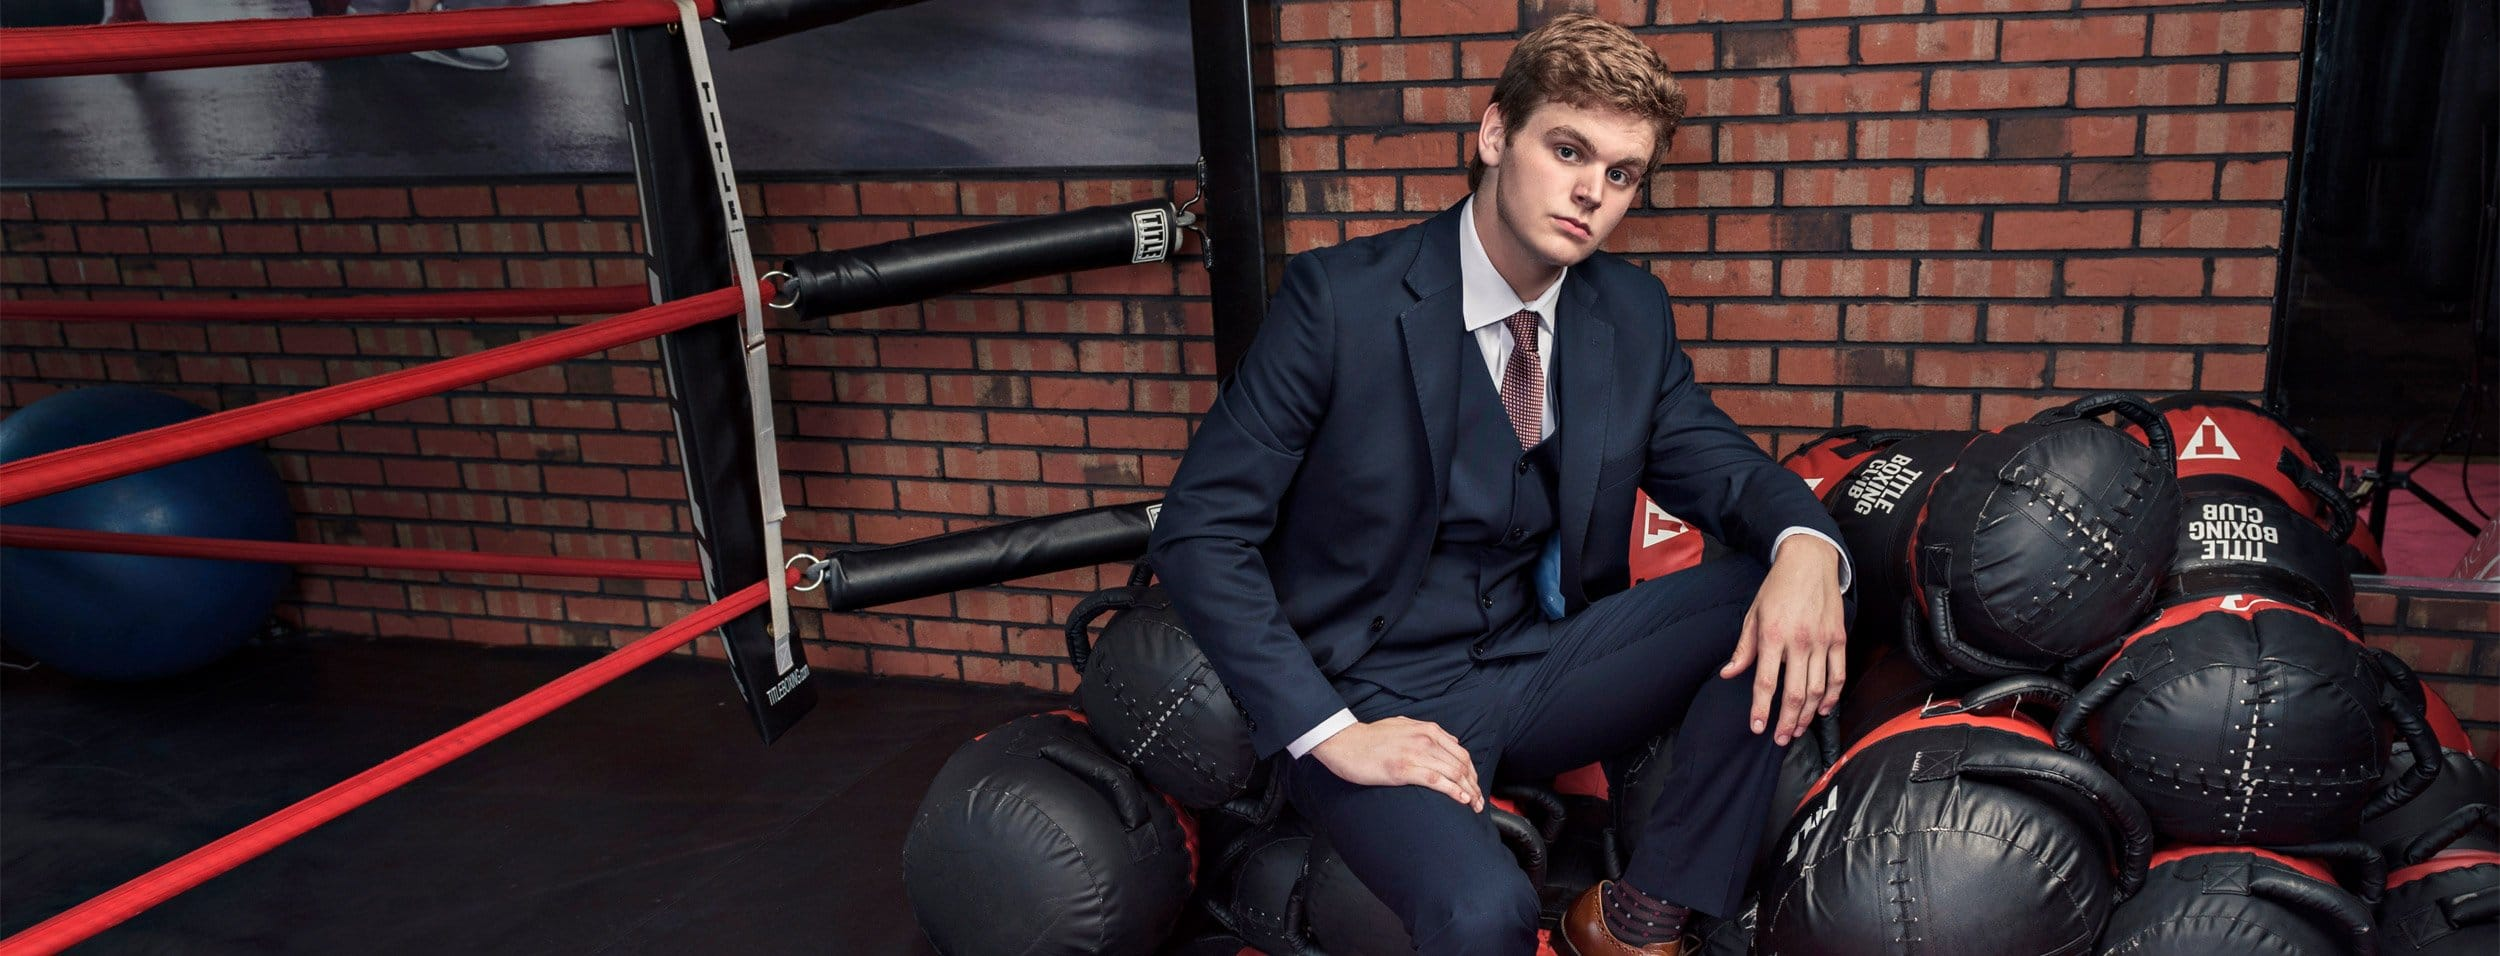 Dallas portrait photographer of boy plano high senior at boxing gym in Mckinney in a suit